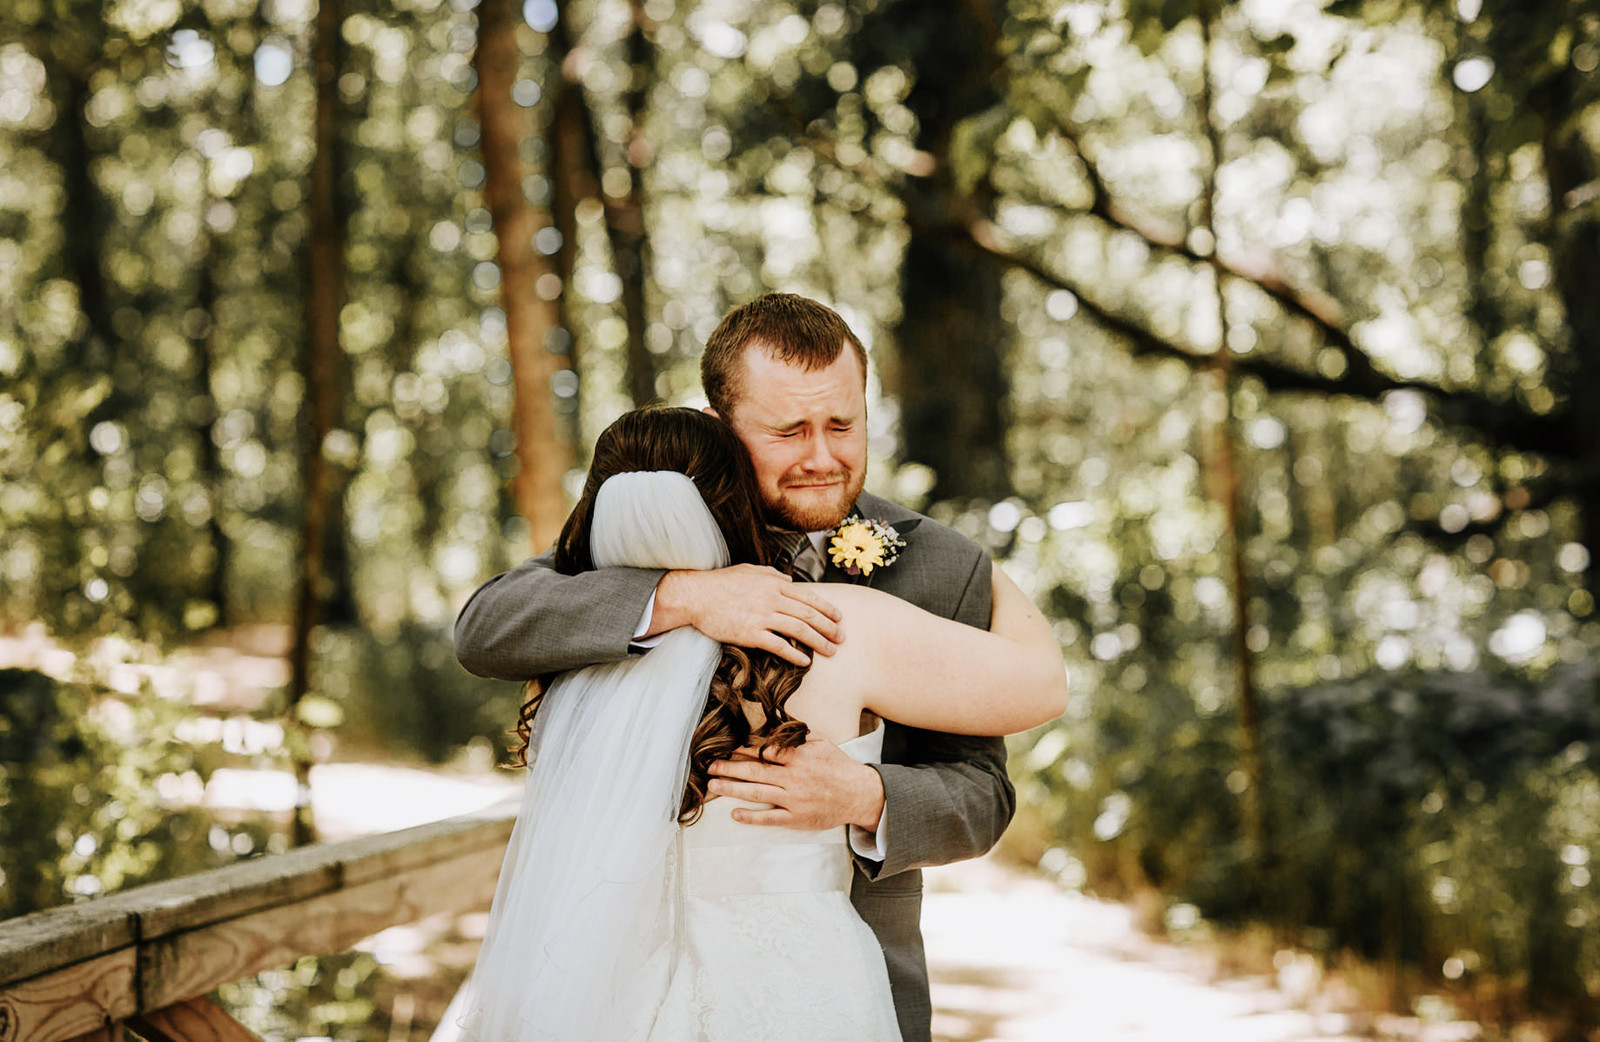 First Look Wedding Photos First Look Ideas Bride And Groom